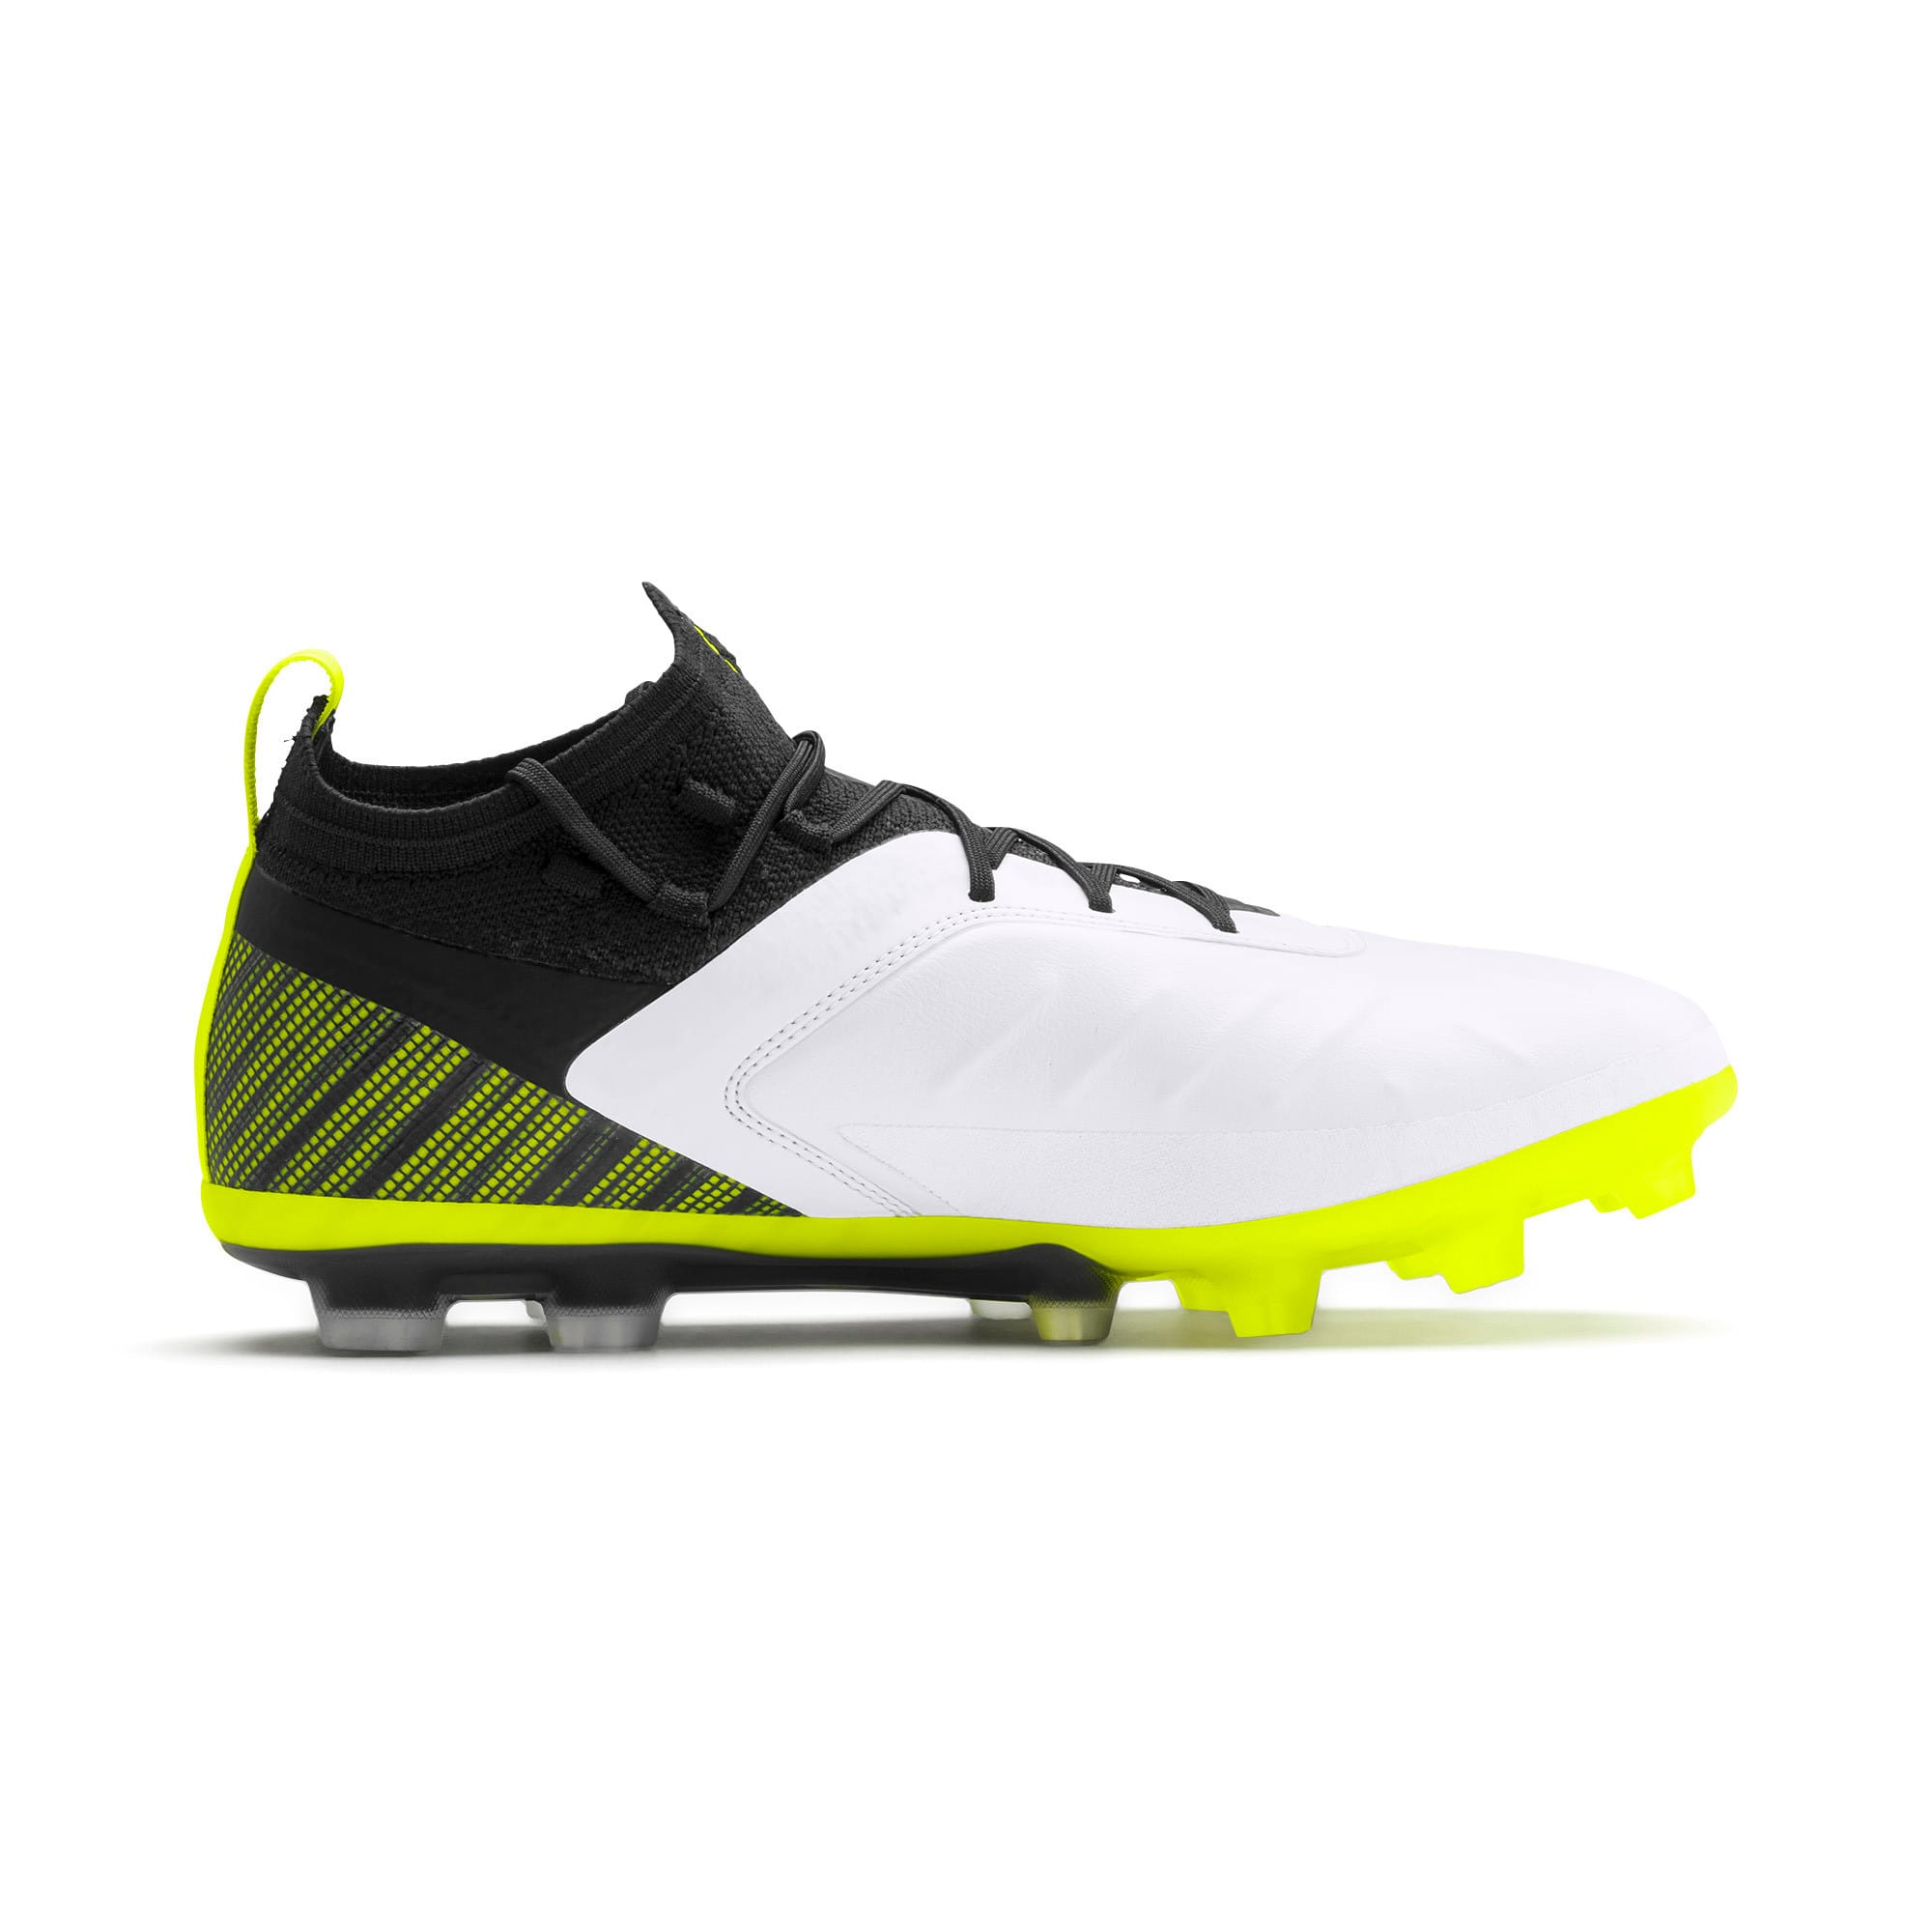 Thumbnail 6 of プーマ ワン 5.1 HG サッカースパイク, White-Black-Yellow Alert, medium-JPN